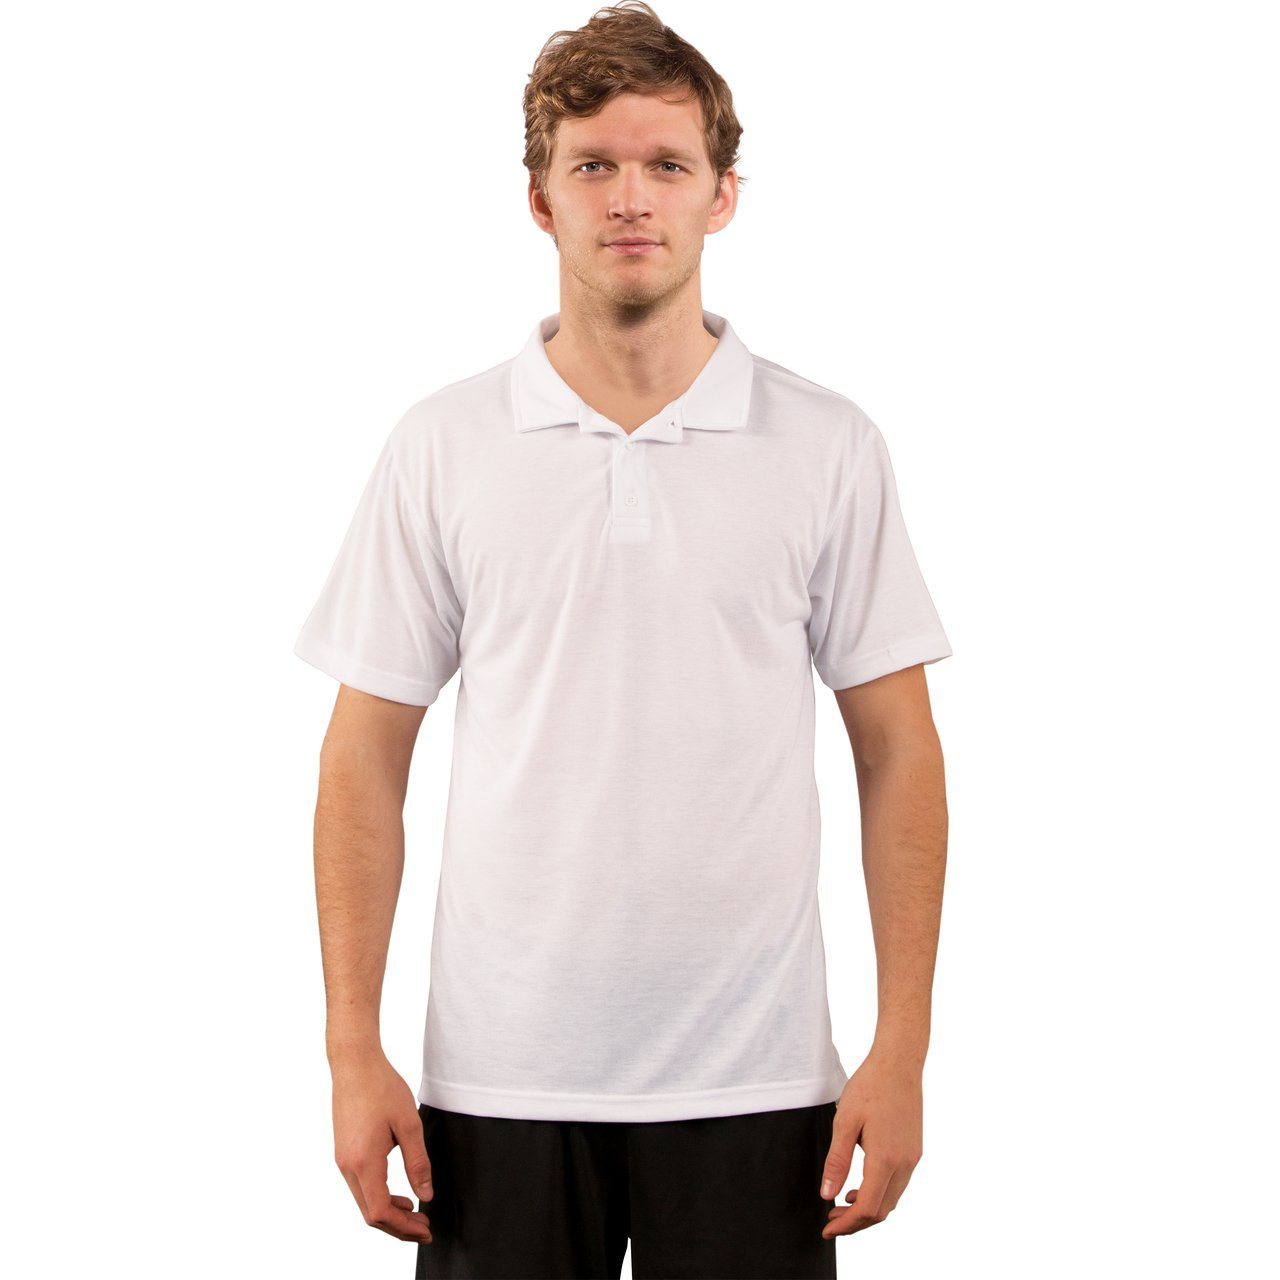 A1SJBPWH Basic Performance Polo - White